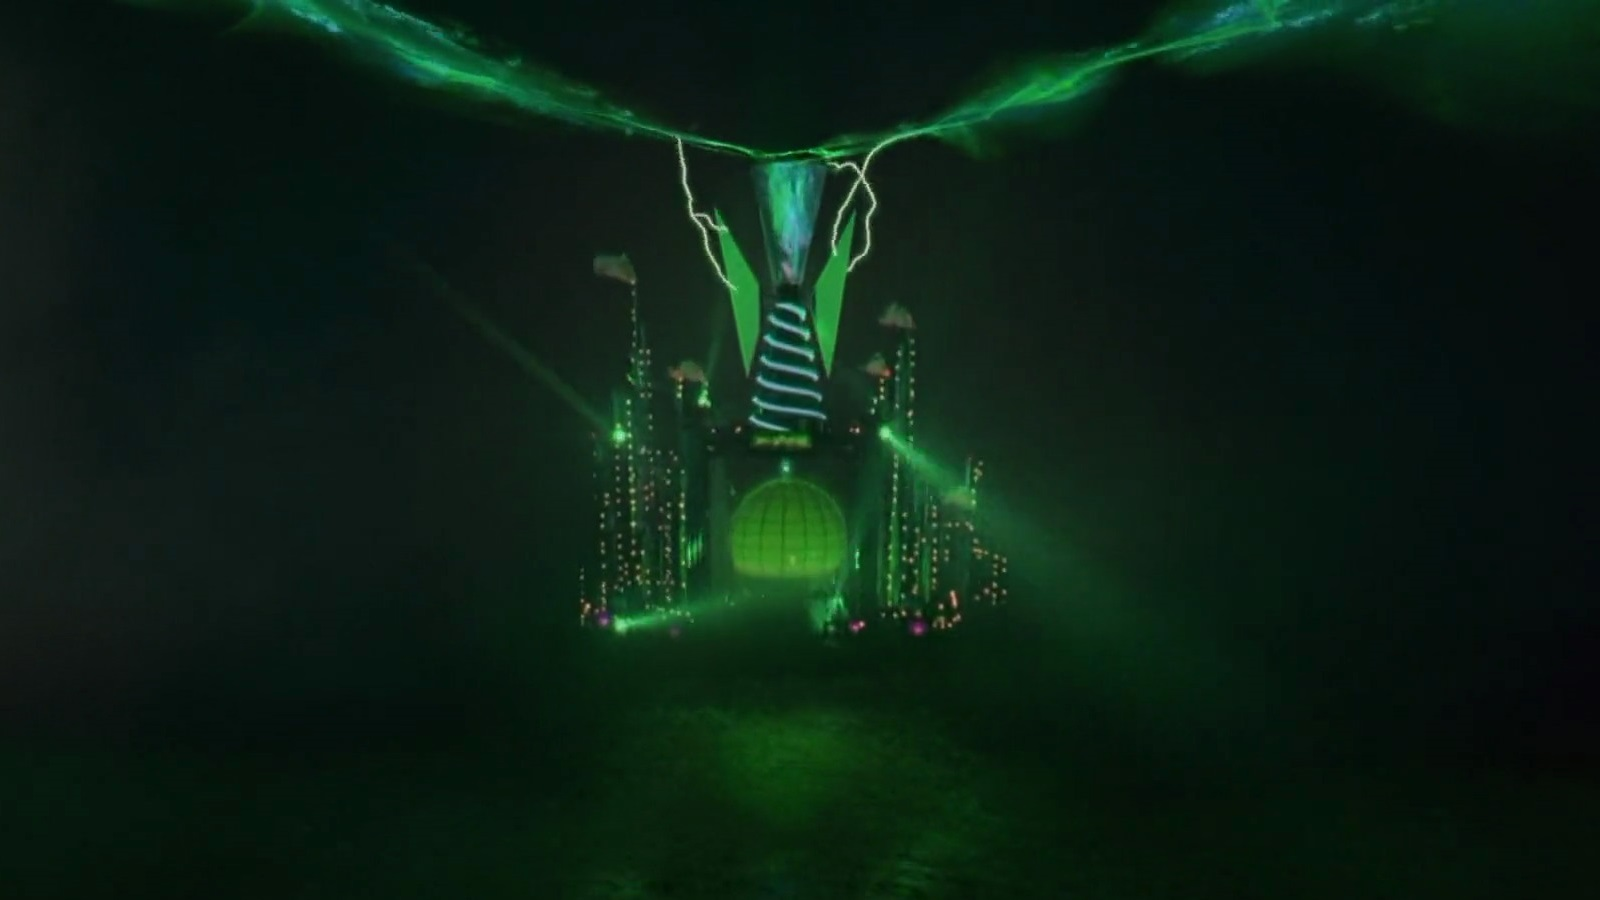 #3 The Riddler's Base, Batman